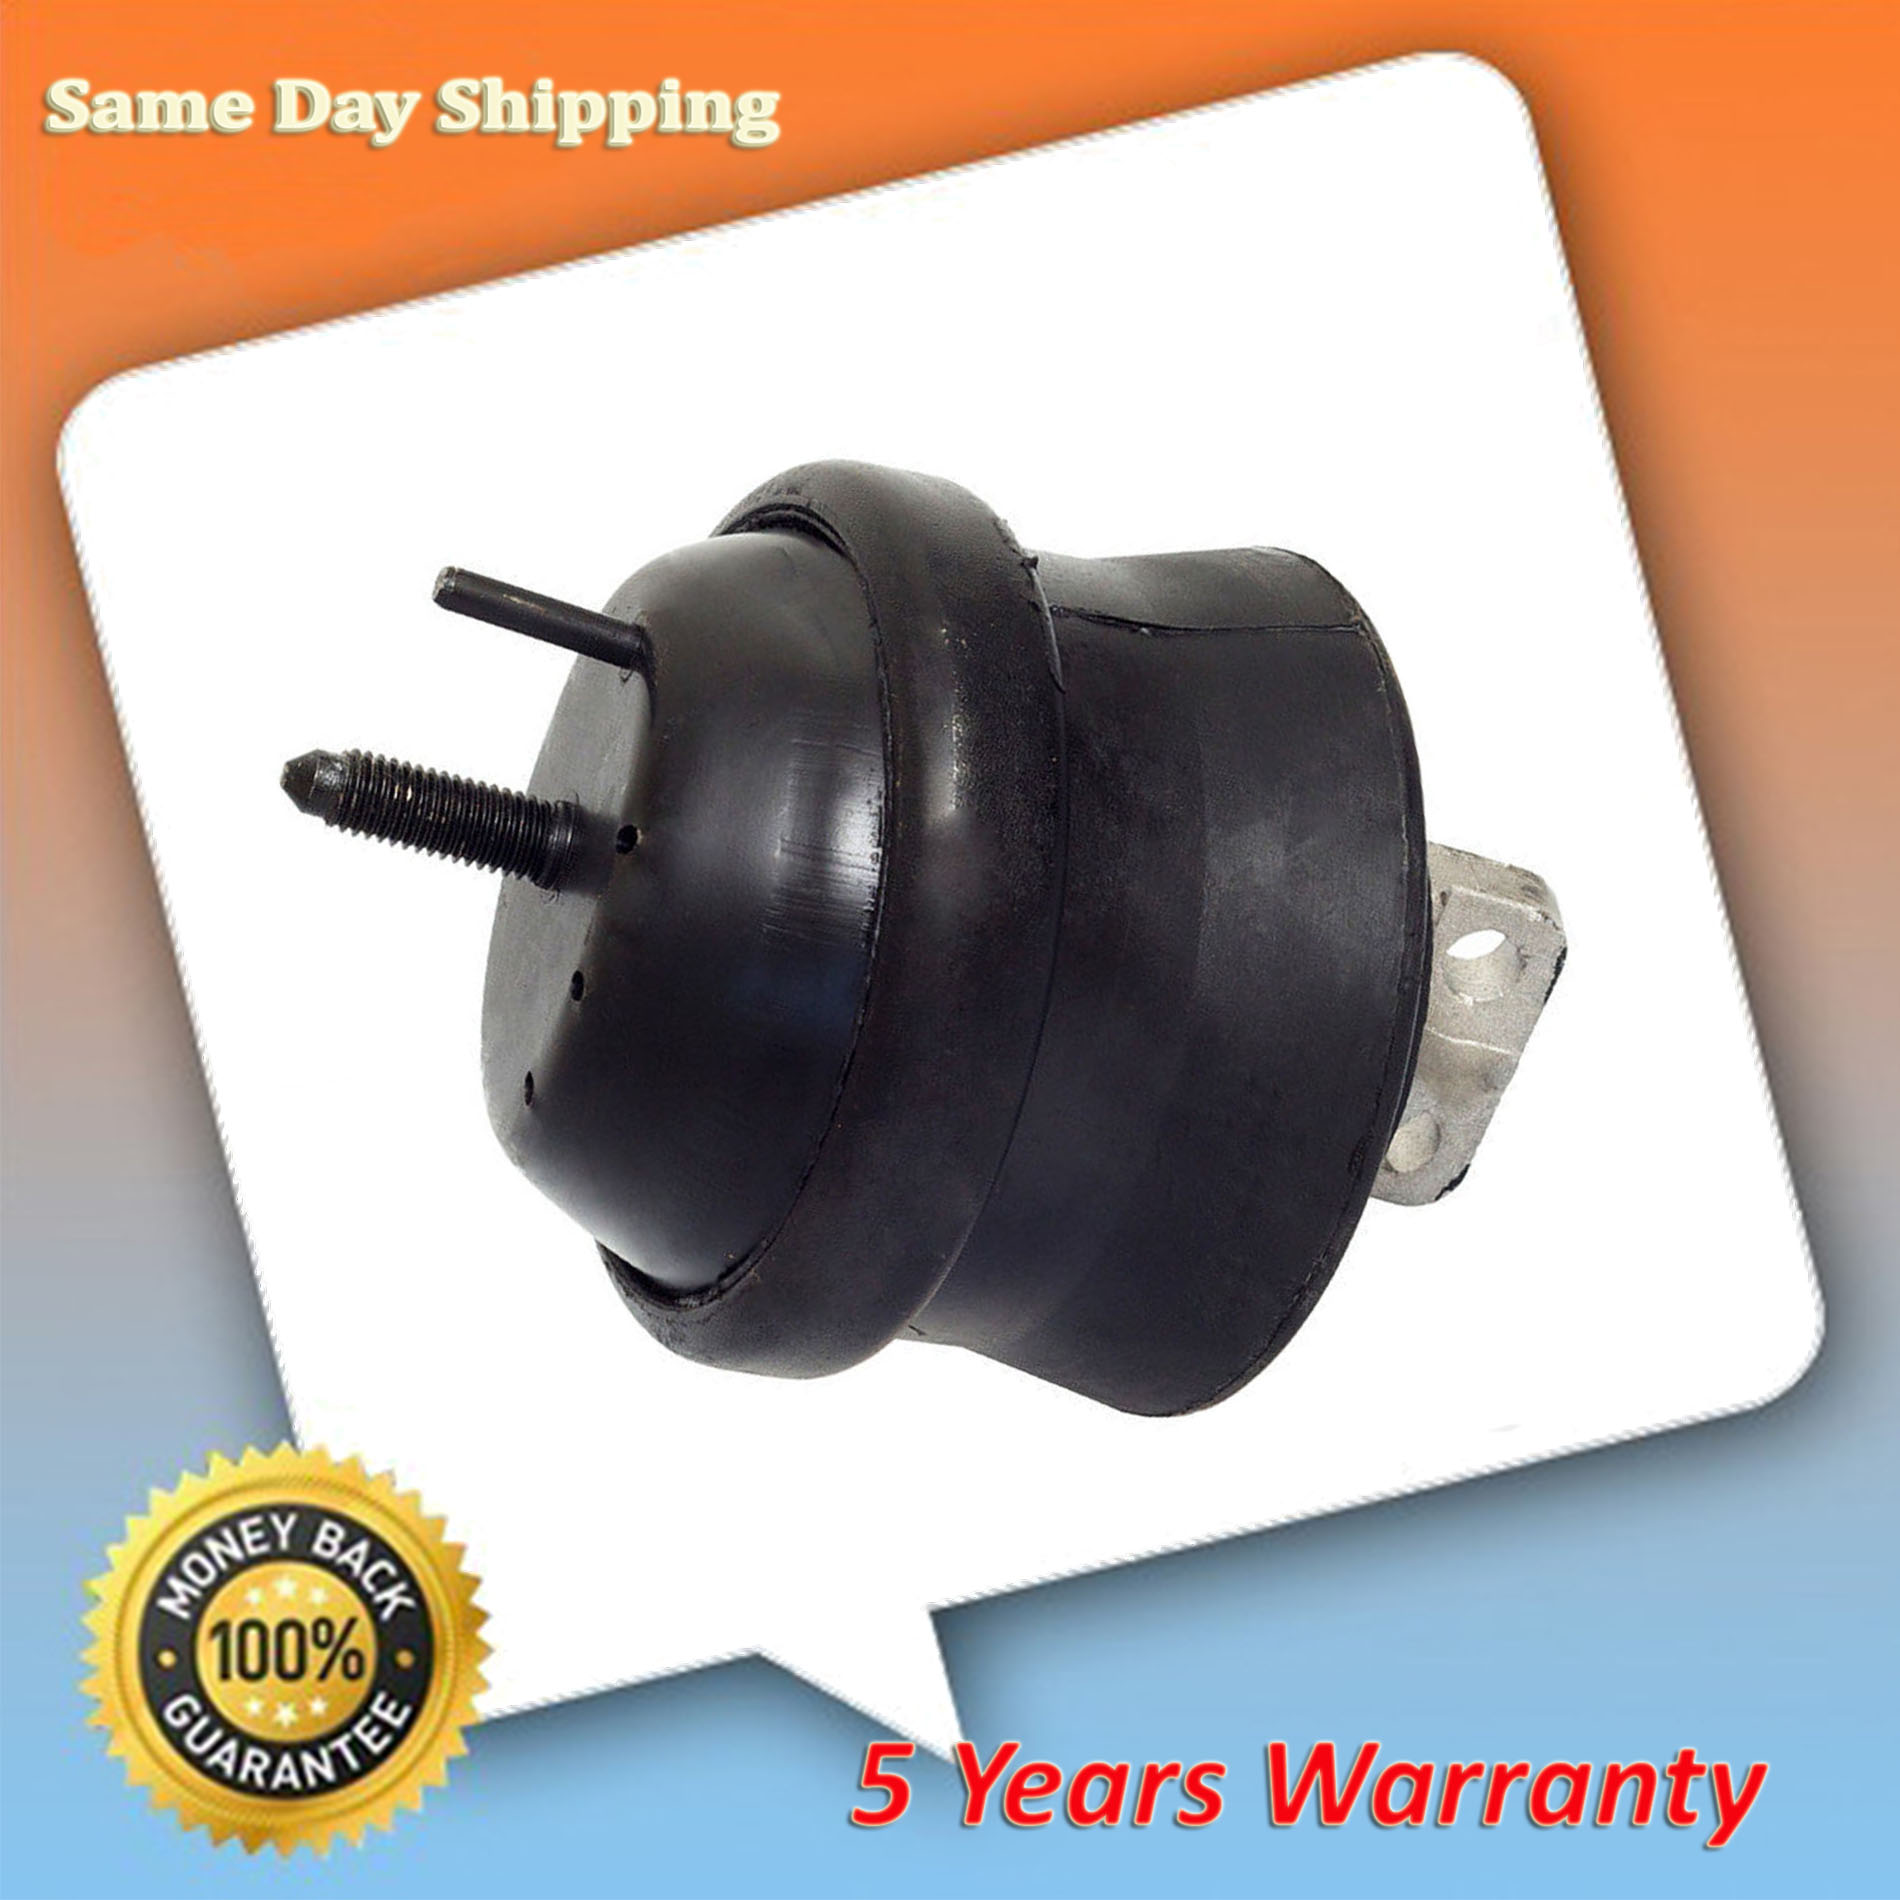 Engine Motor Mount For 96-99 For Ford Taurus 3.0L//96-99 Mercury Sable 3.0L 2789*